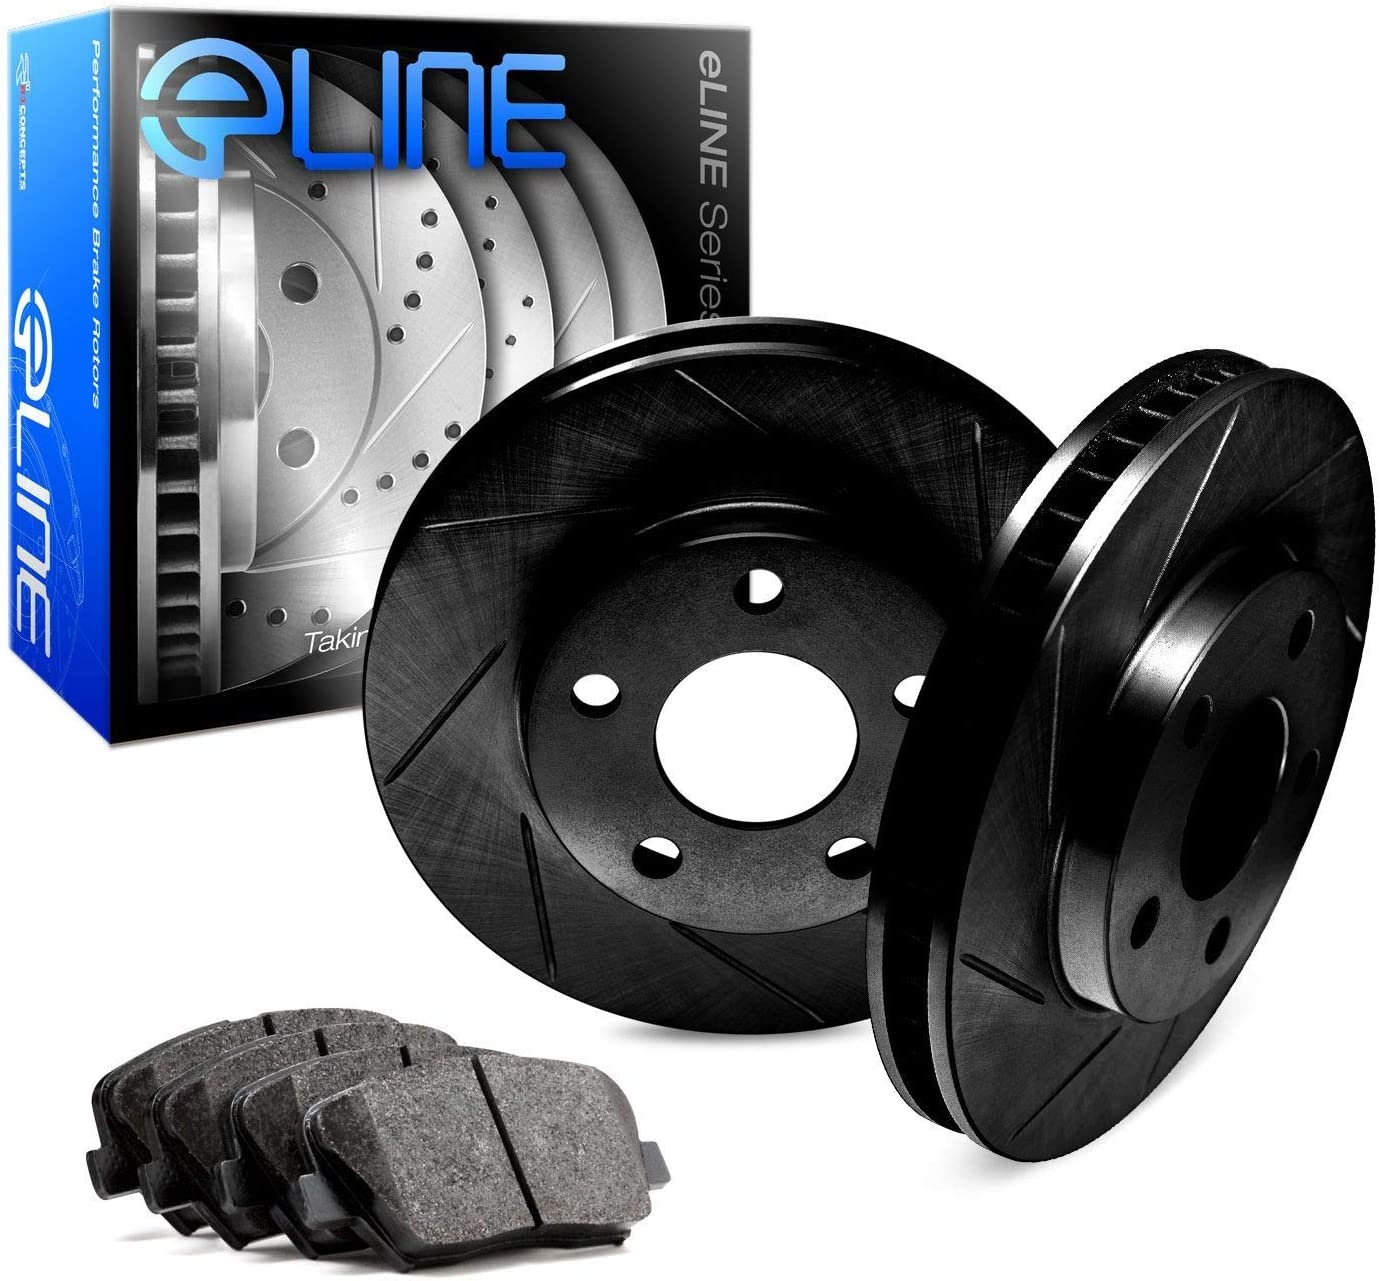 Free shipping / New For 2000 List price Ford F-150 Front R1 Brake Black Slotted Concepts eLine